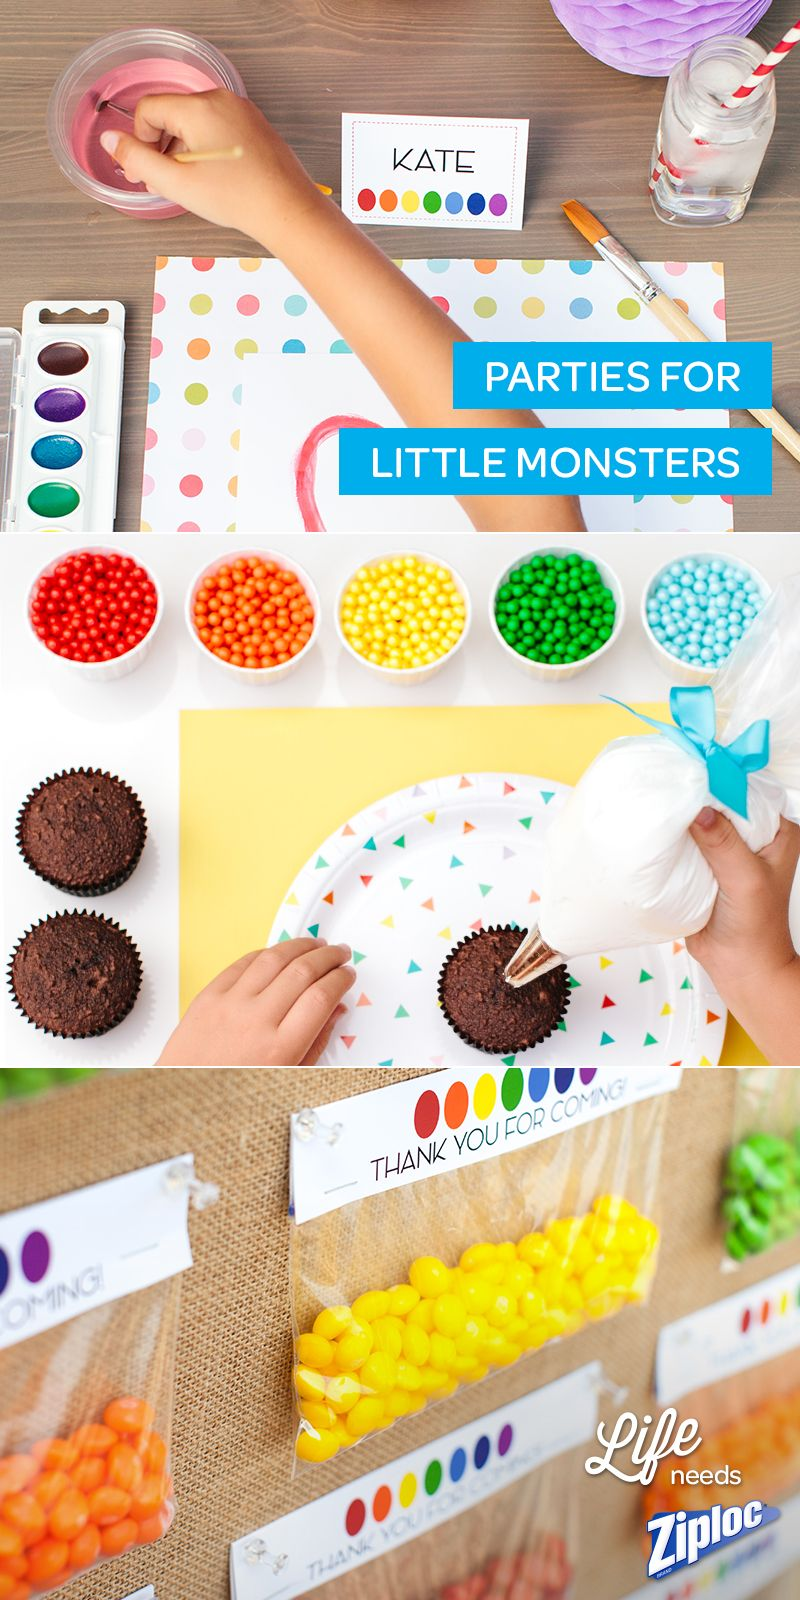 cute, last minute party ideas to throw together quickly for little